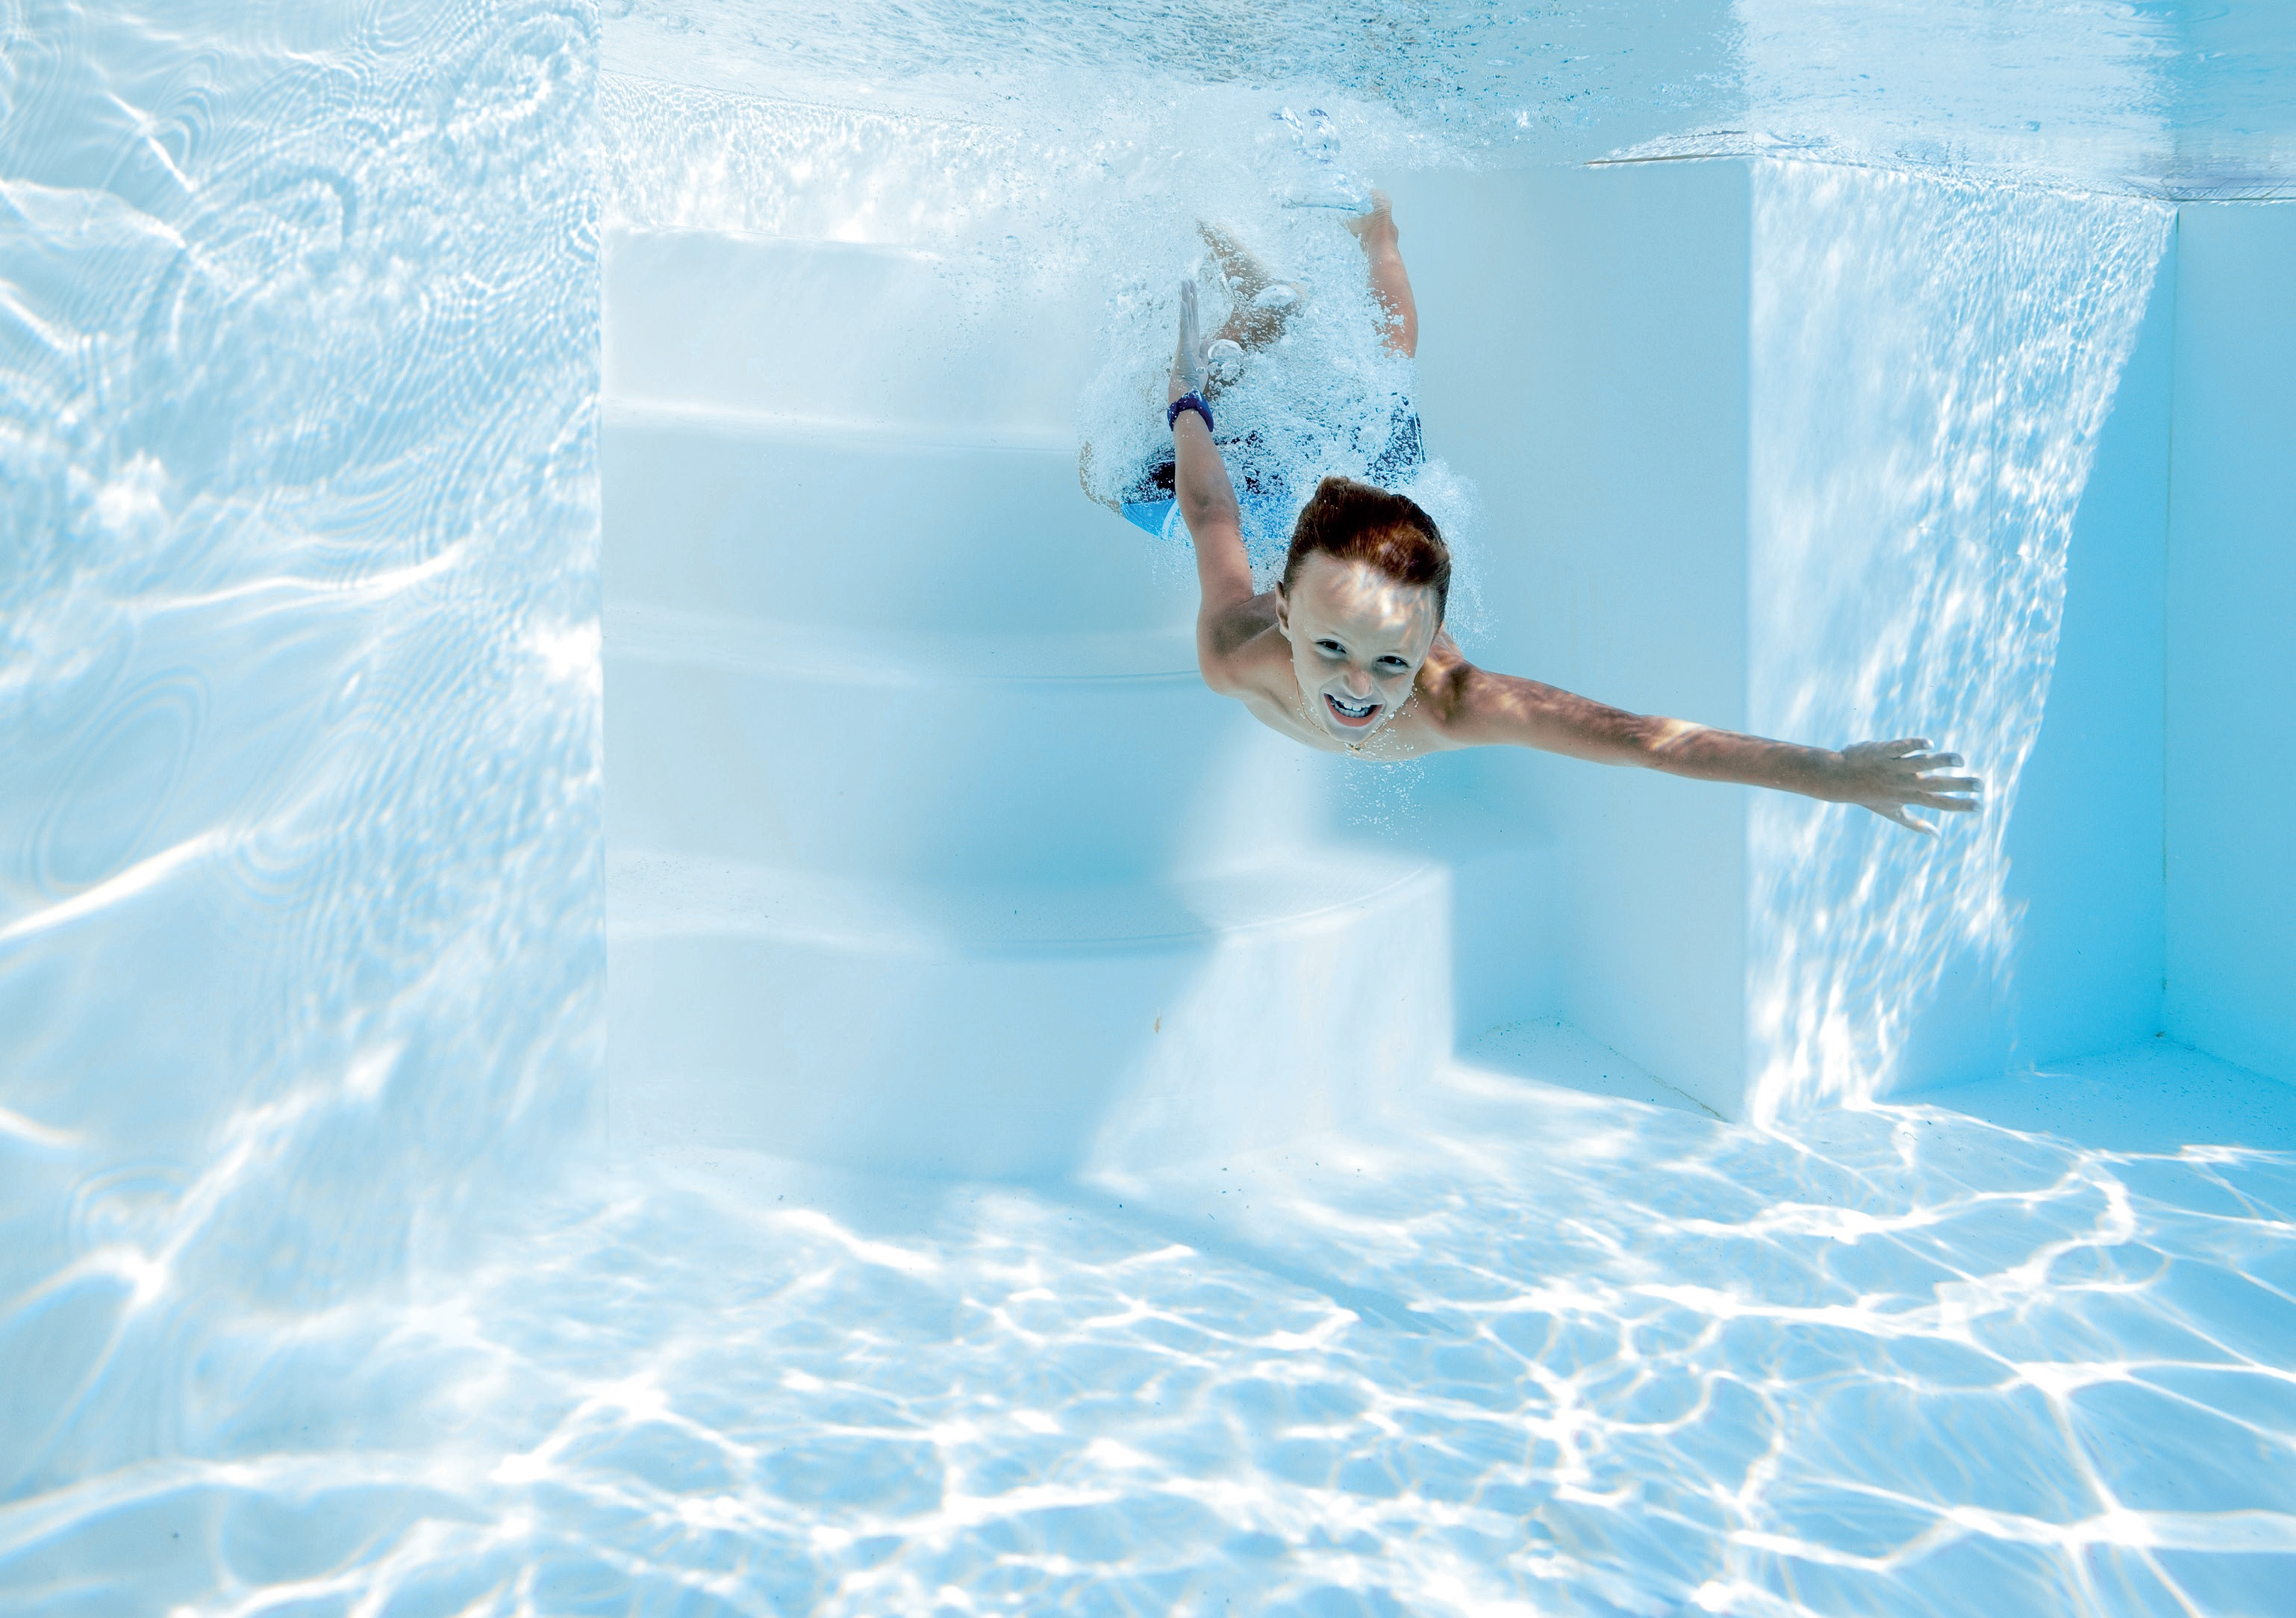 ABOVE: The Daisy disinfection system results in a safer, more pleasant environment for bathers.